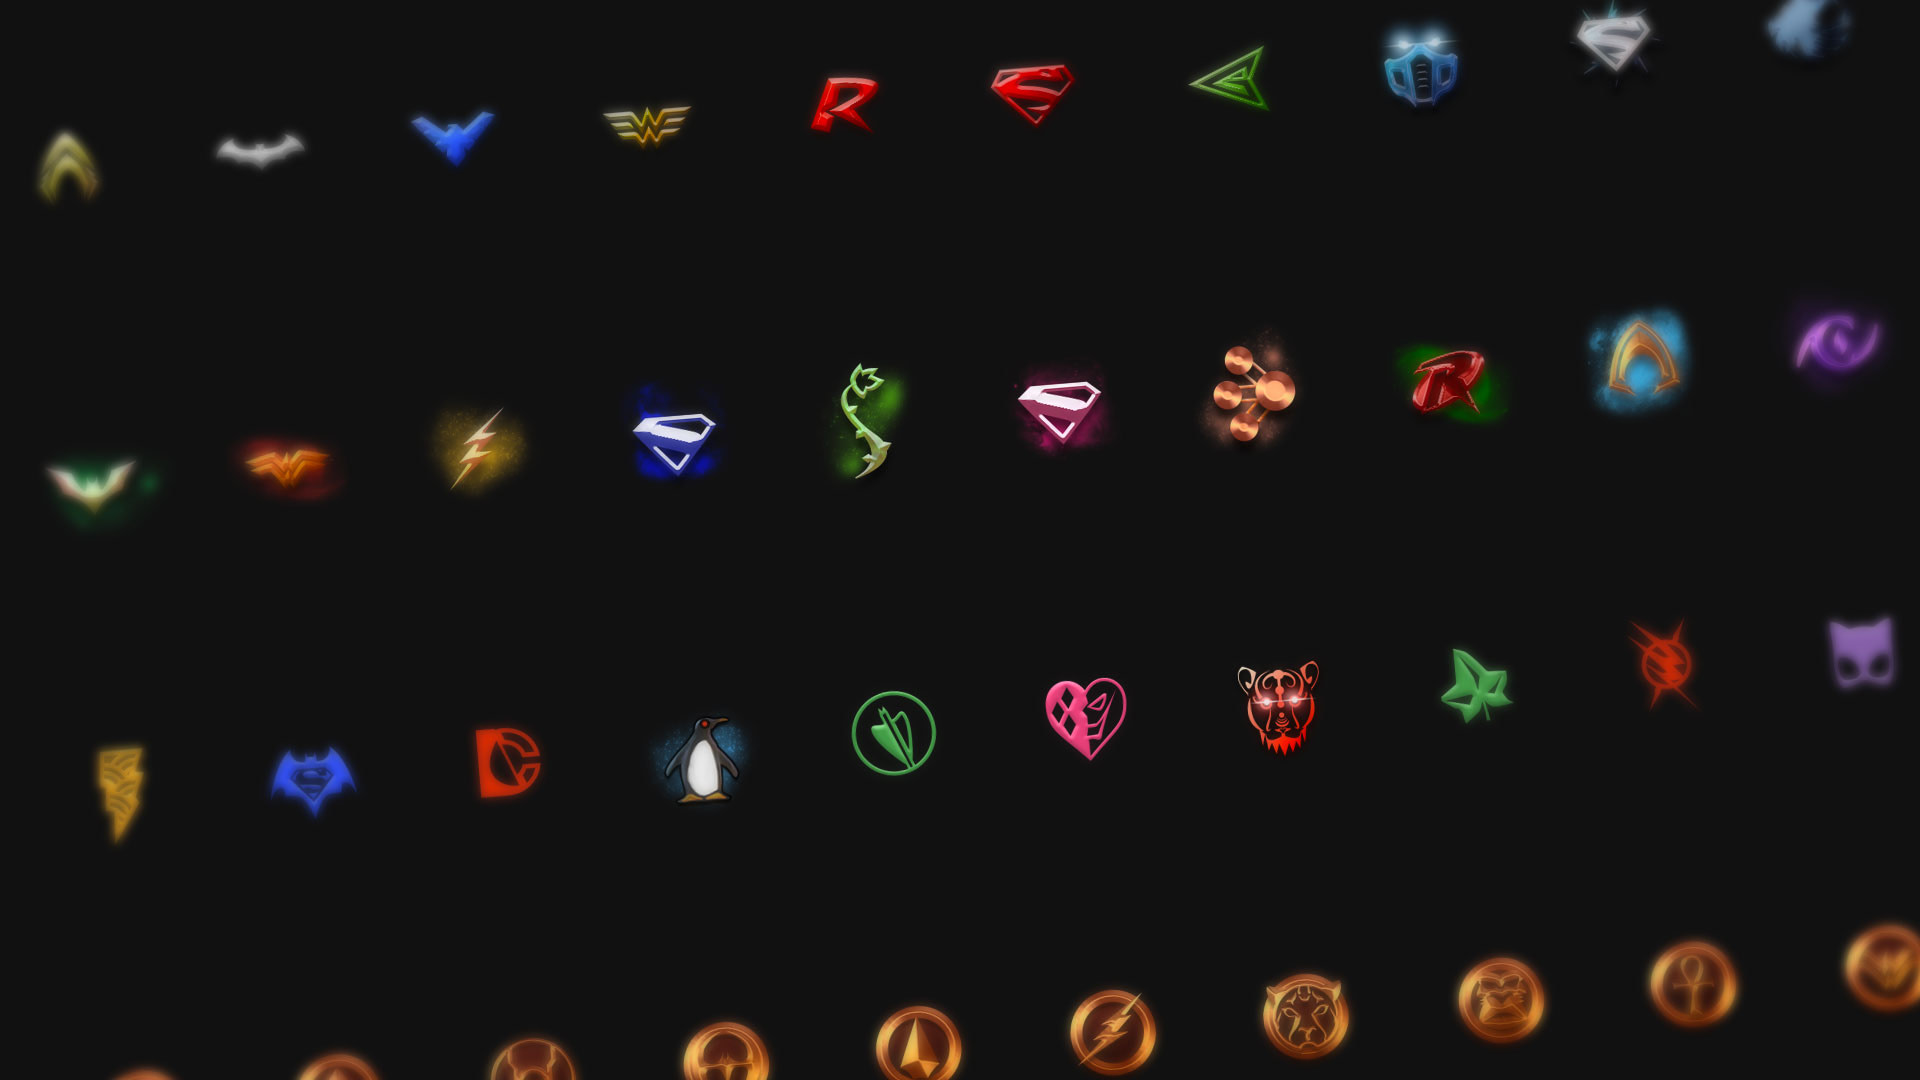 Injustice 2 Icons